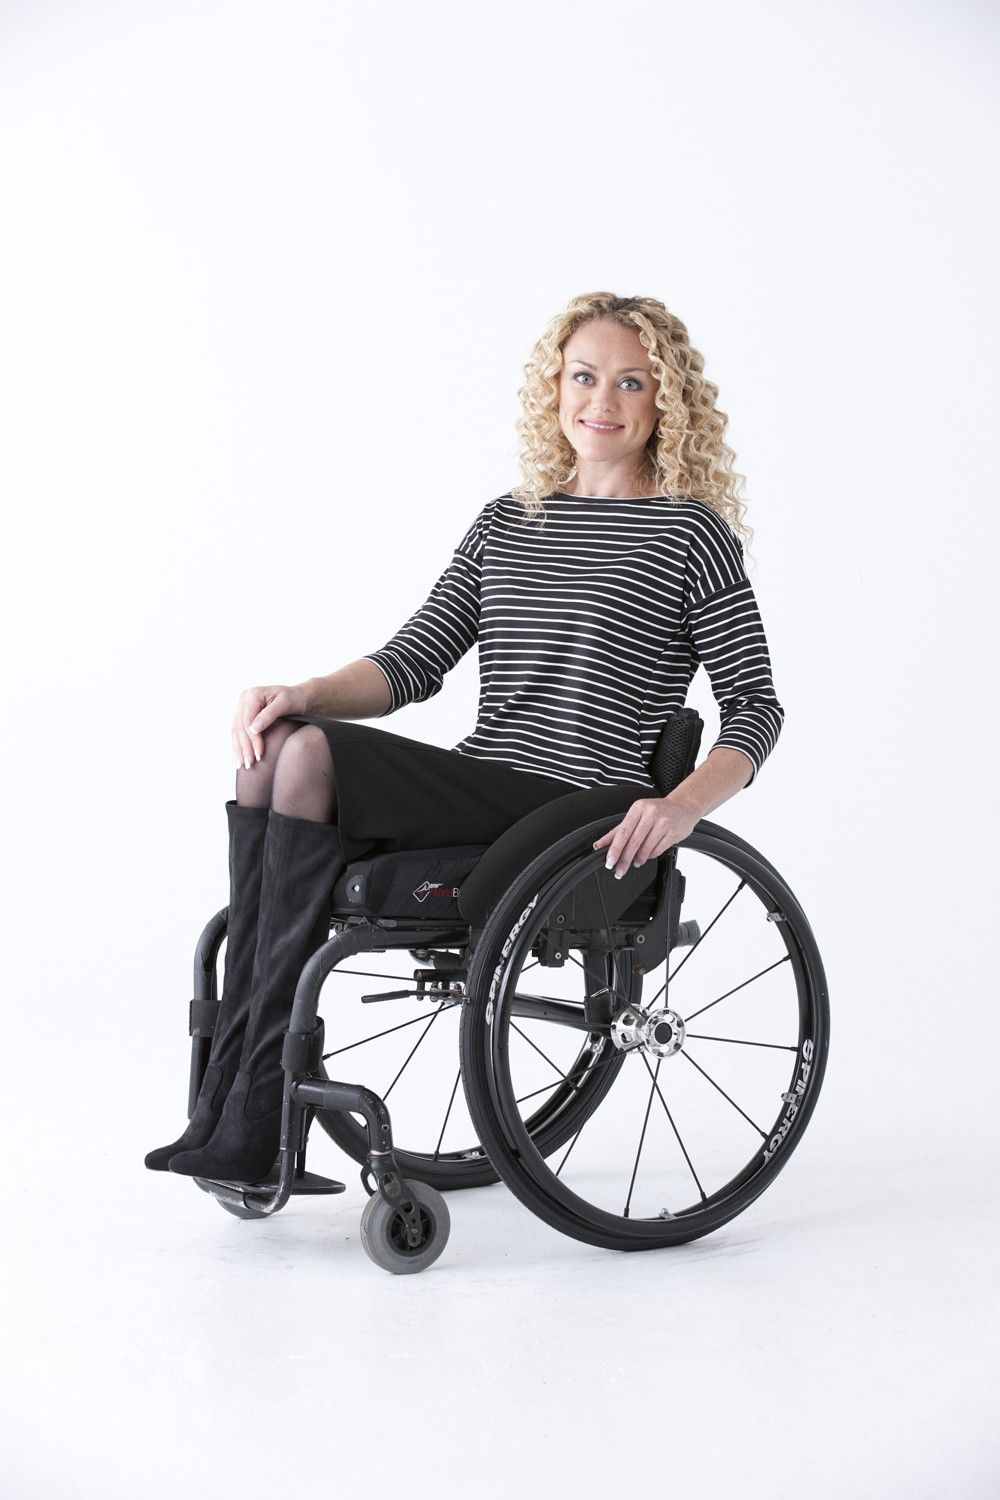 cute clothing designed for people who use wheelchairs!